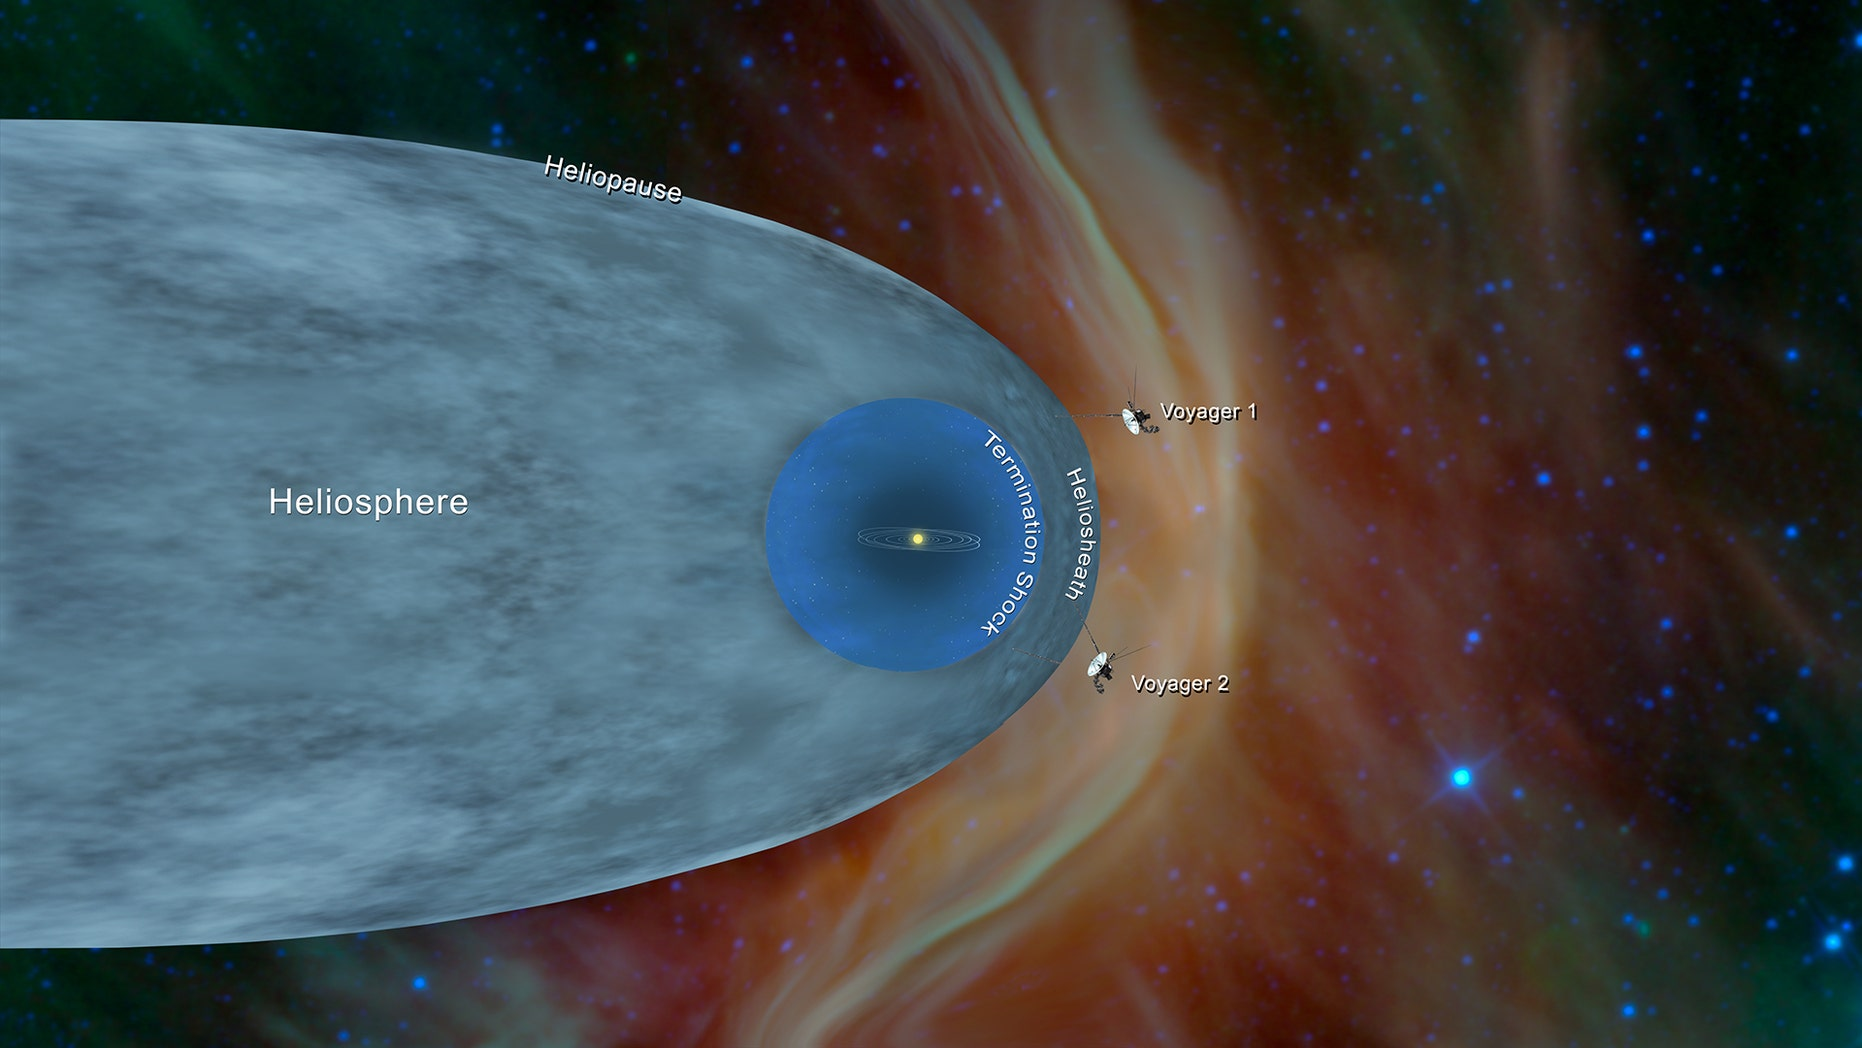 This illustration shows the position of NASA's Voyager 1 and Voyager 2 probes outside of the heliosphere a protective bubble created by the Sun that extends well past the orbit of Pluto